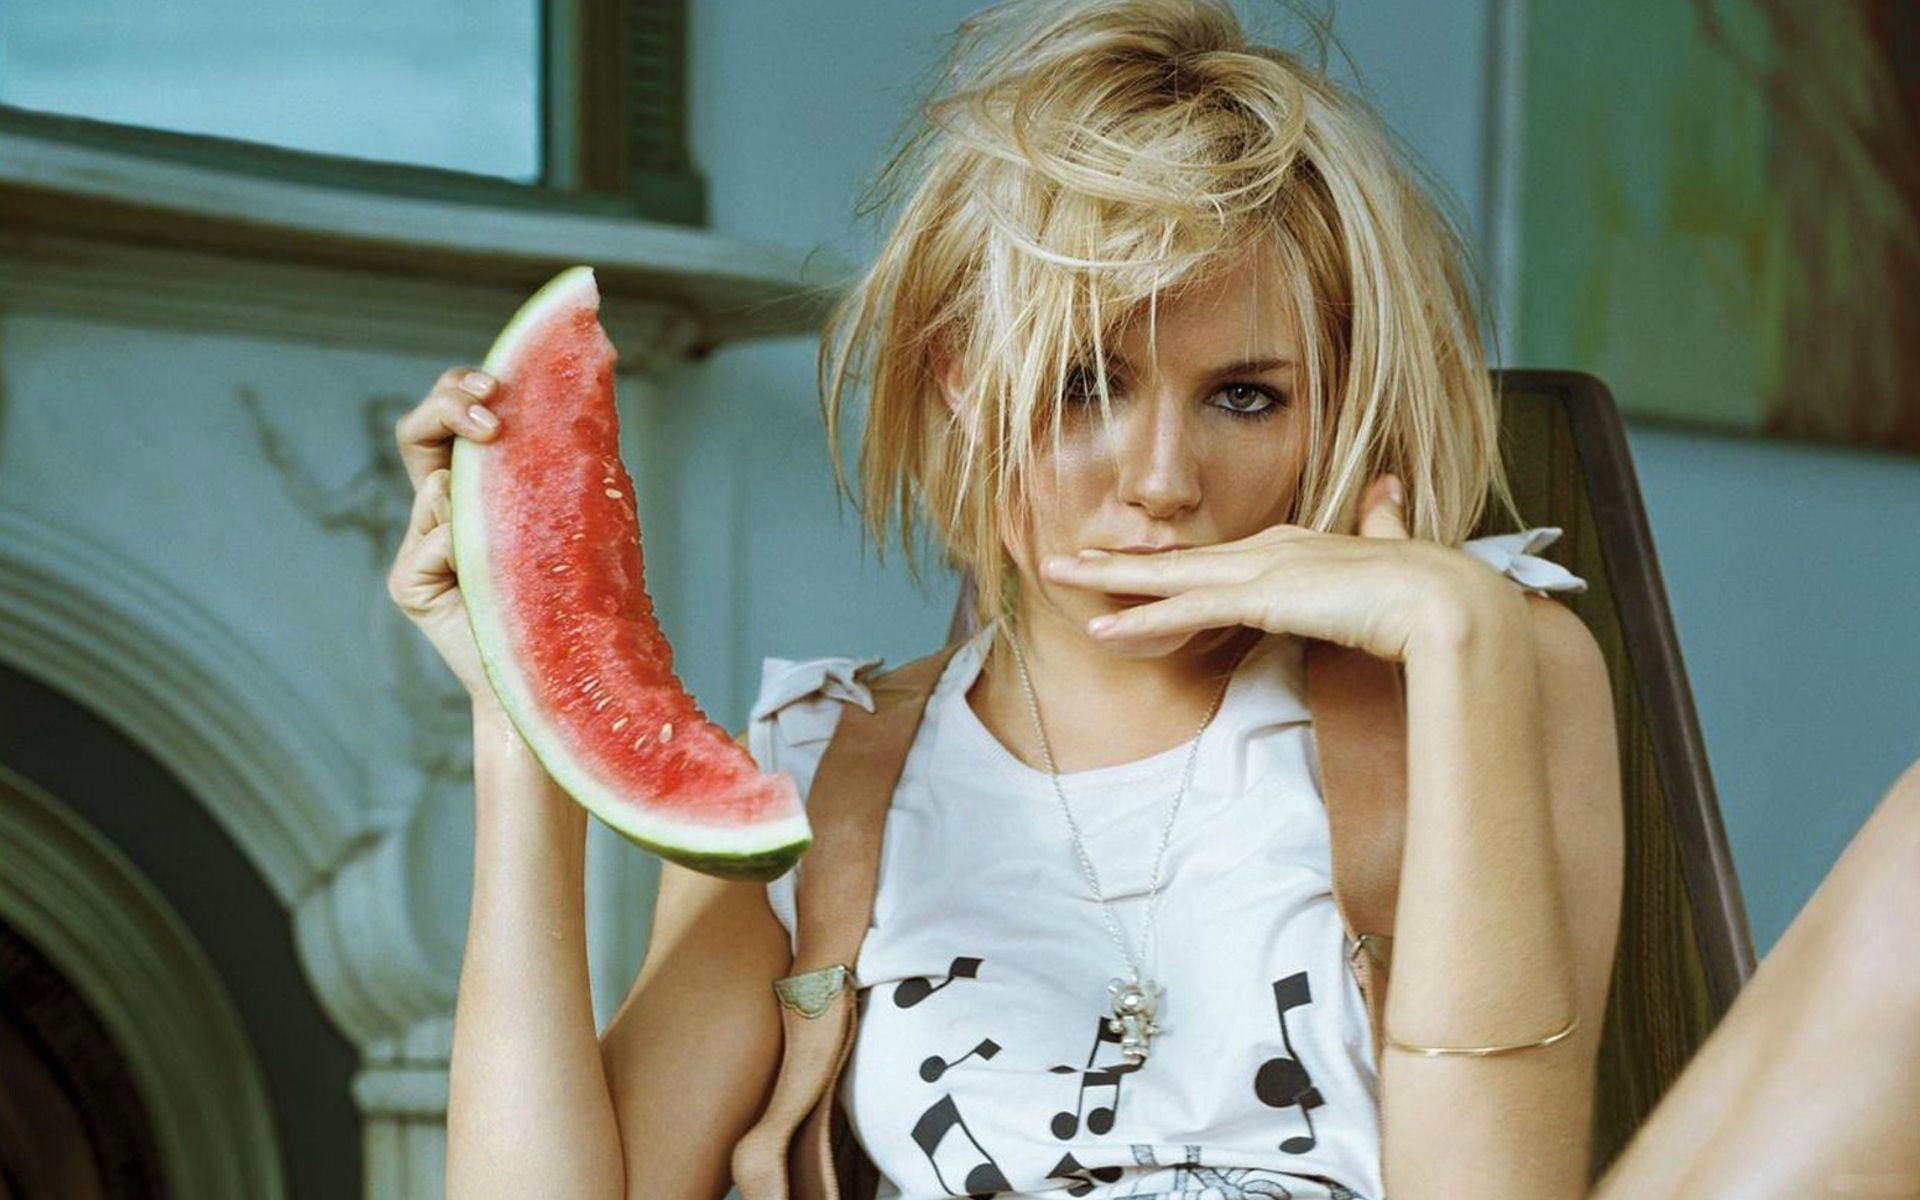 14 - 17 Girls With Their Watermelons To Give You A Taste Of Watermelonday